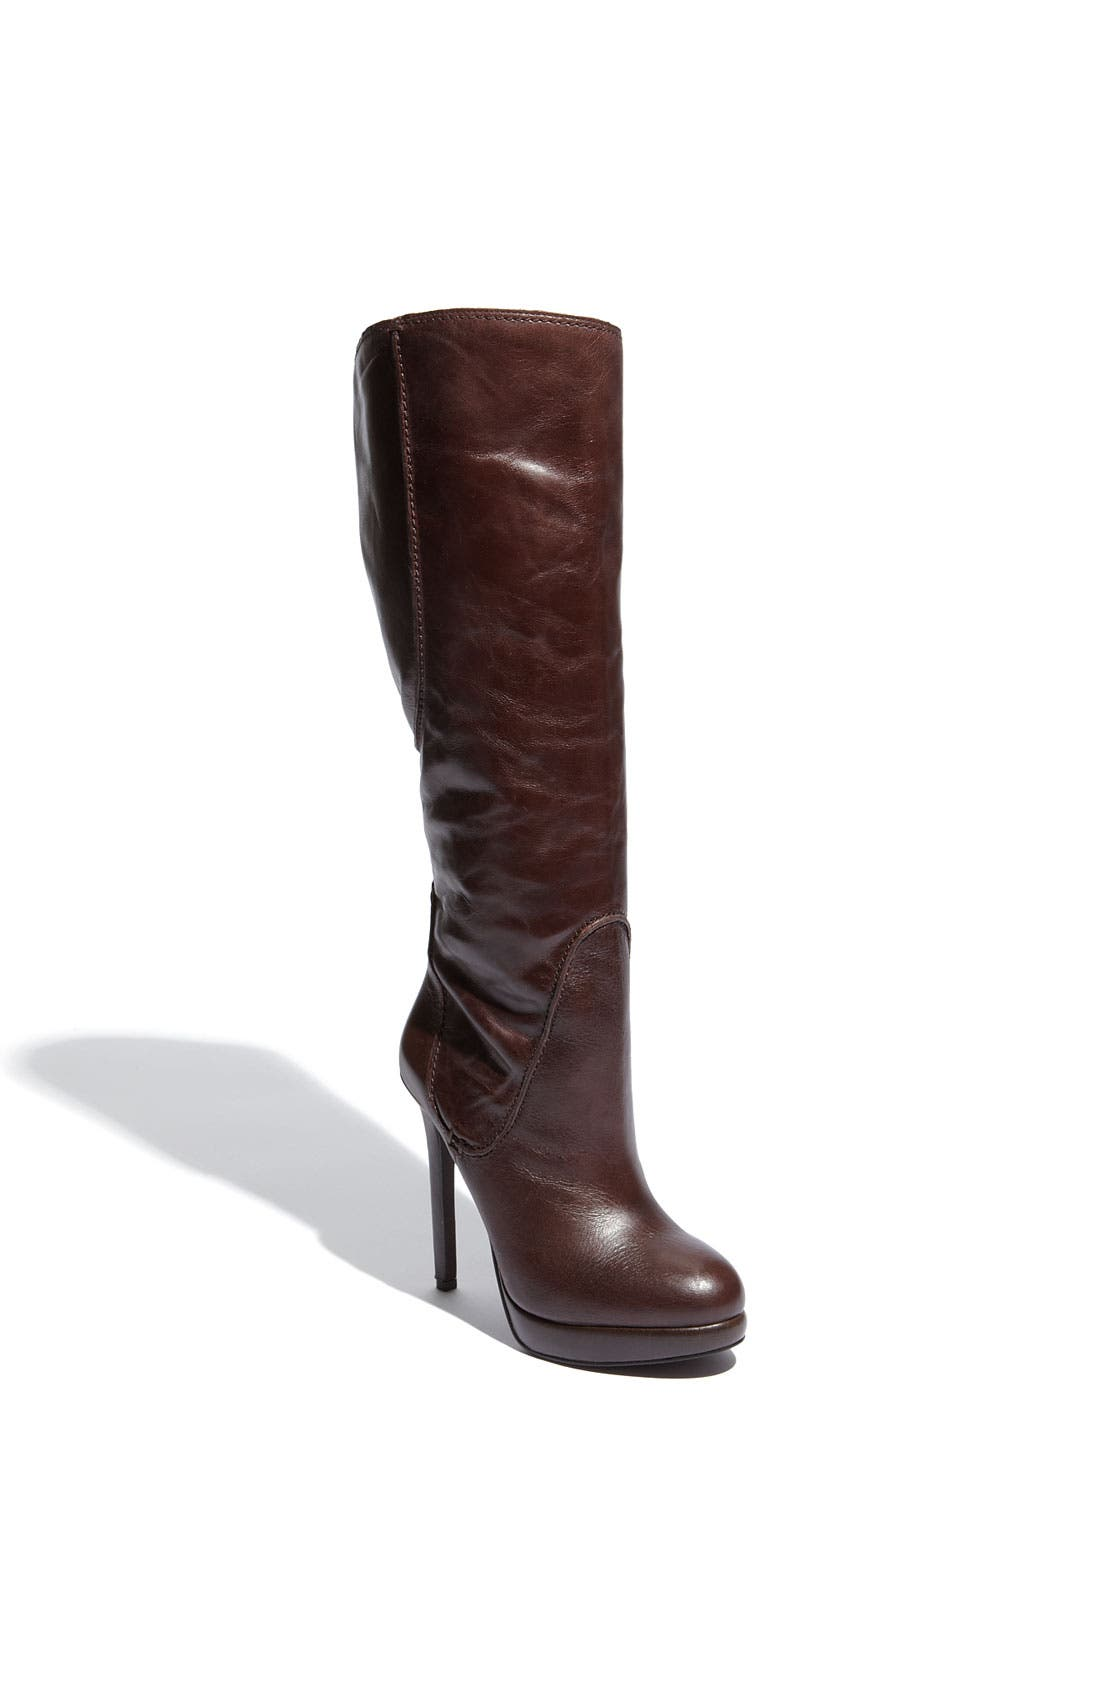 Alternate Image 1 Selected - Jessica Simpson 'Stephena' Boot